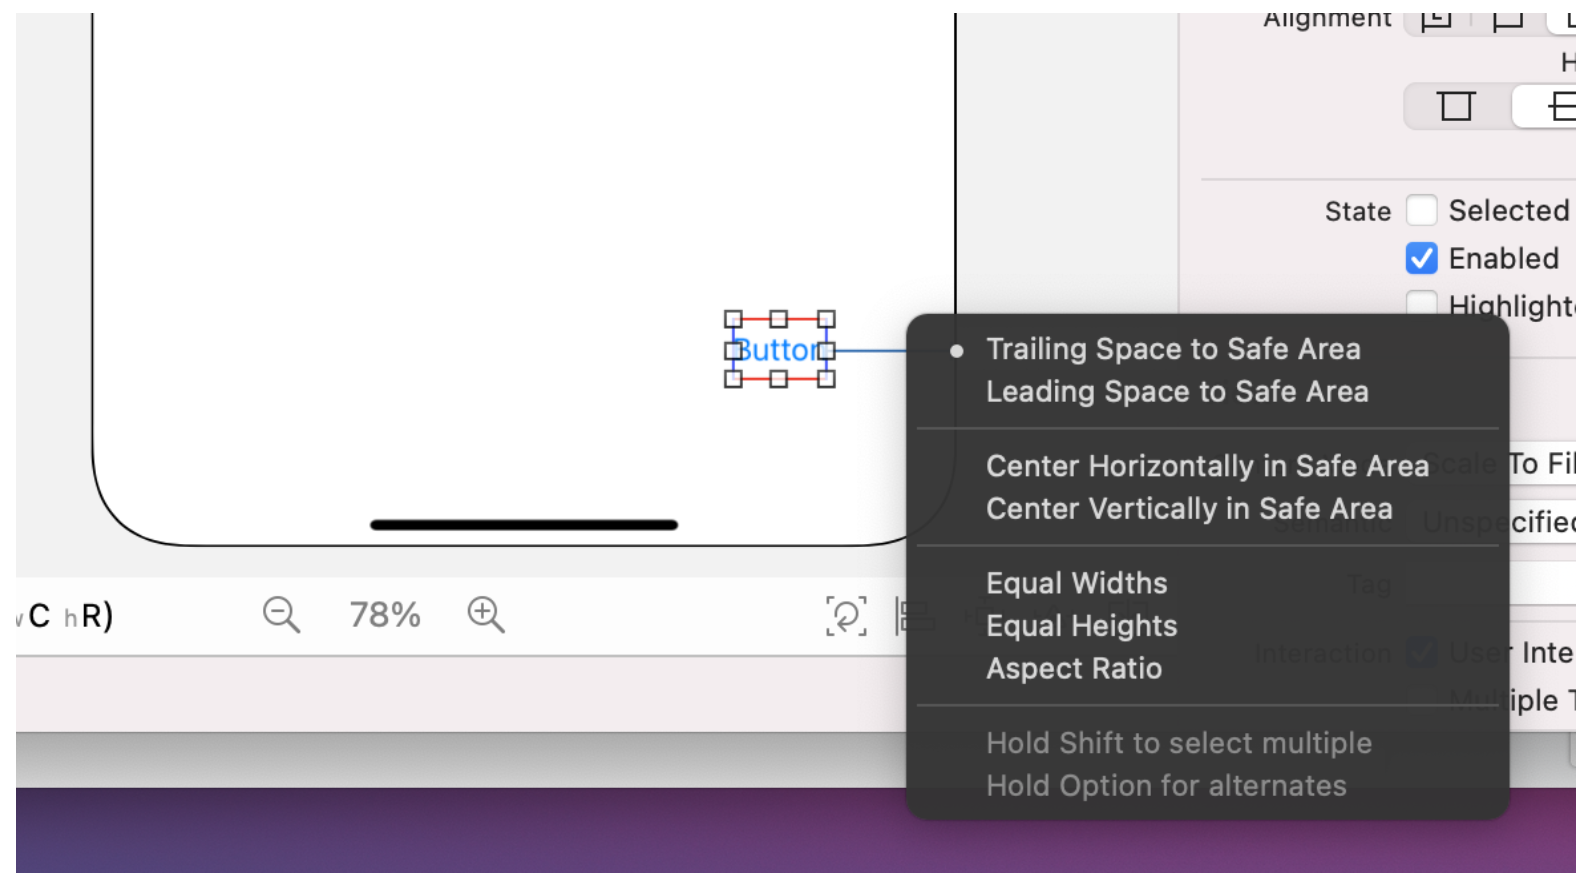 Drag the button to the bottom right of the screen and select **Trailing Space to Safe Area** from the Constraints menu.